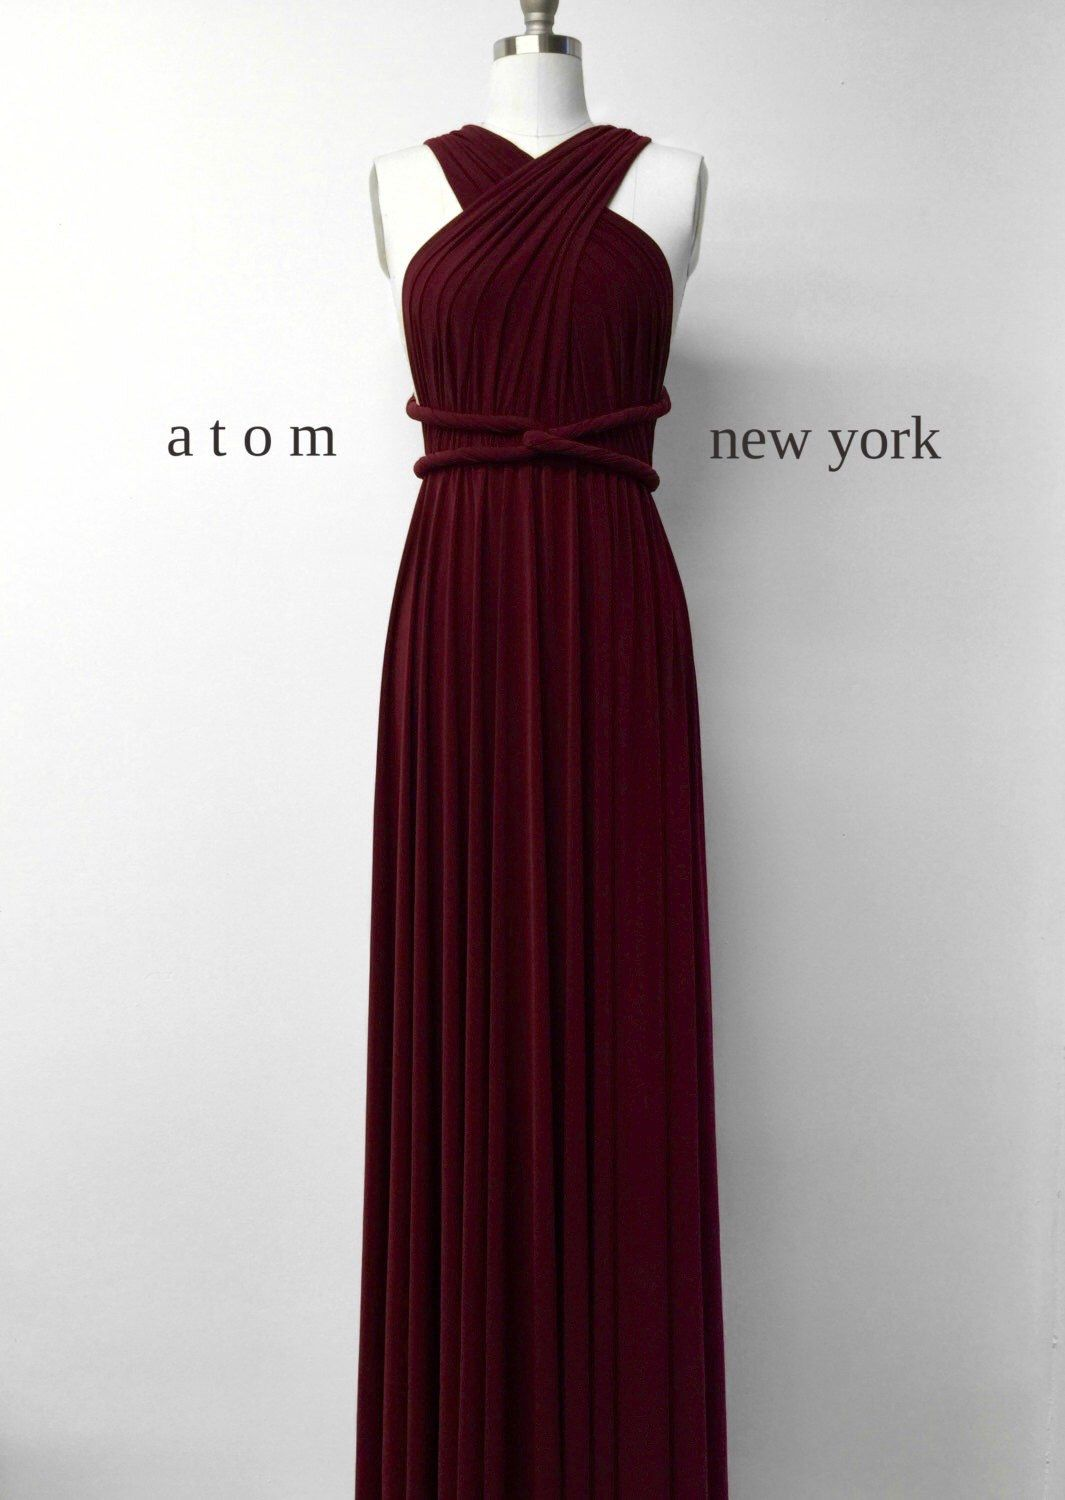 06b9e13bcac Burgundy Wine Red Floor Length Ball Gown Infinity Dress Convertible Formal  Multiway Wrap Dress Bridesmaid Dress